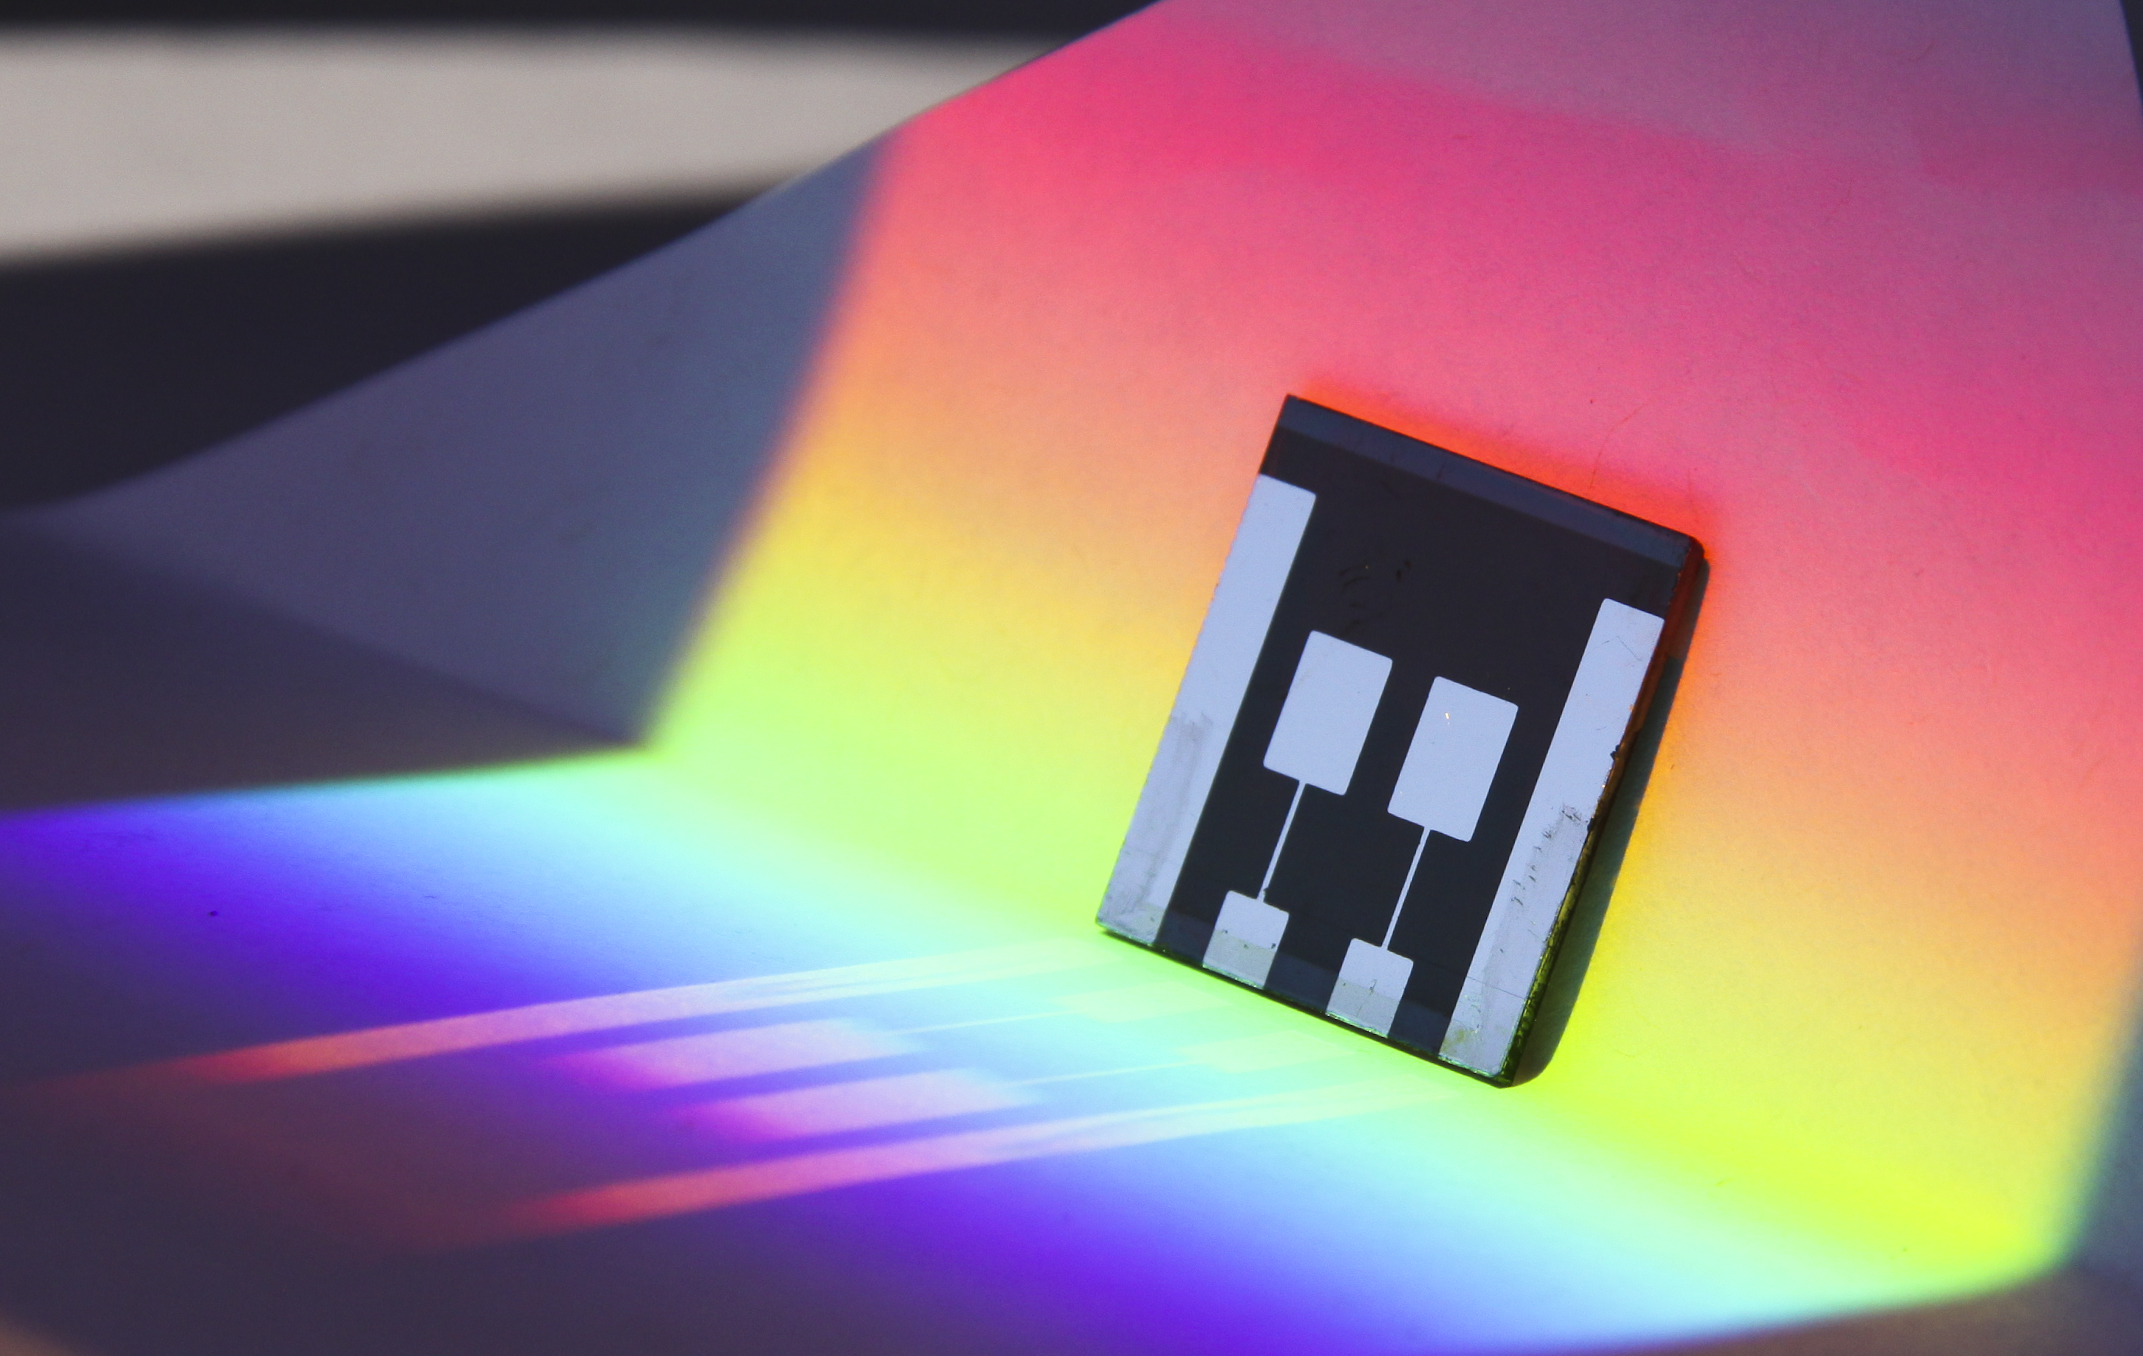 New perovskite solar cells could outperform existing commercial technologies, say scientists